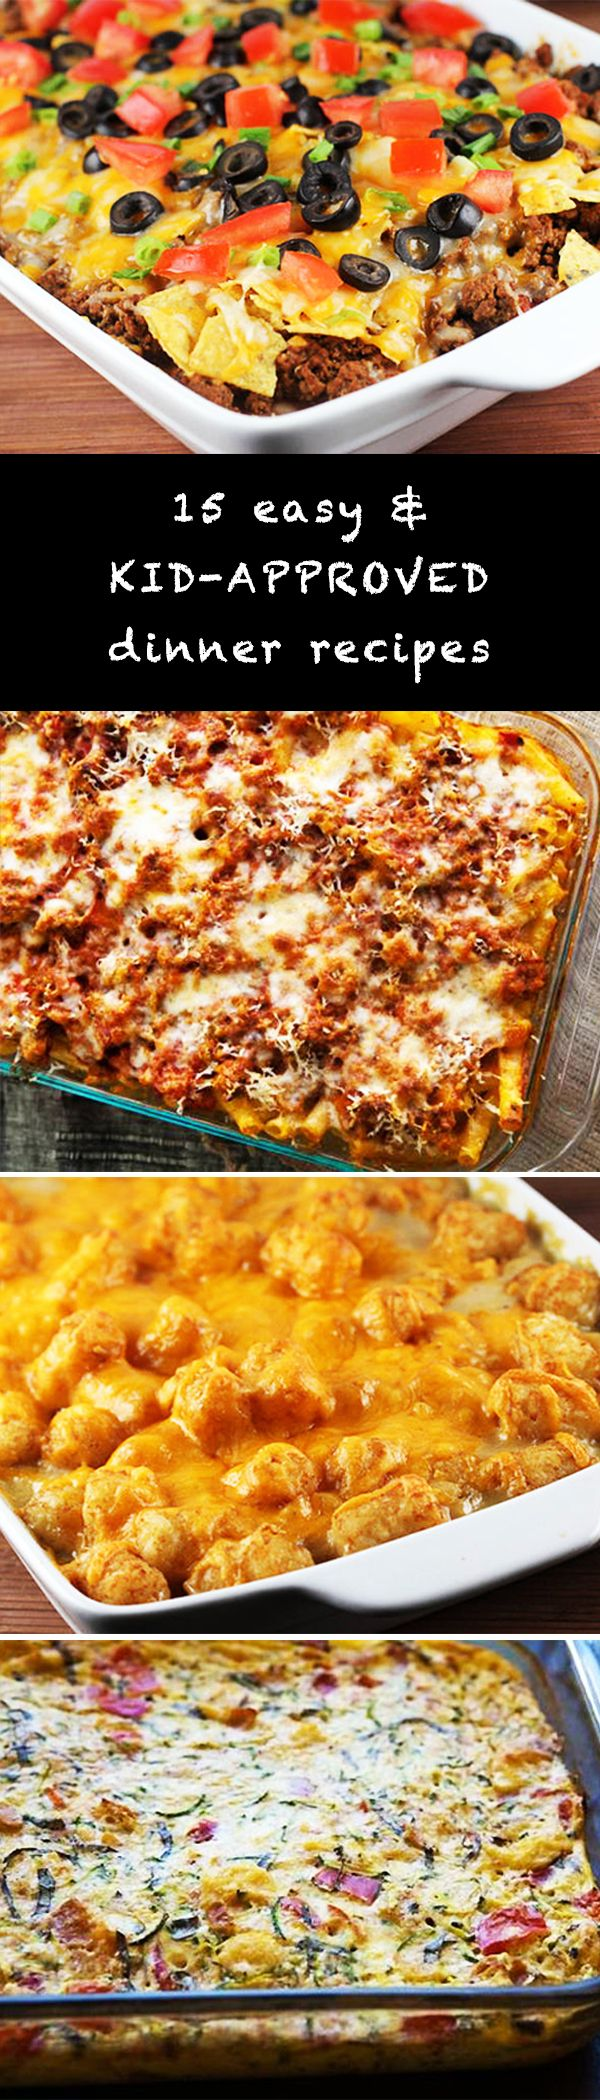 Casseroles are a lifesaver! A squared portion of calories that makes me not want to eat for a week delicious lifesaver! lol